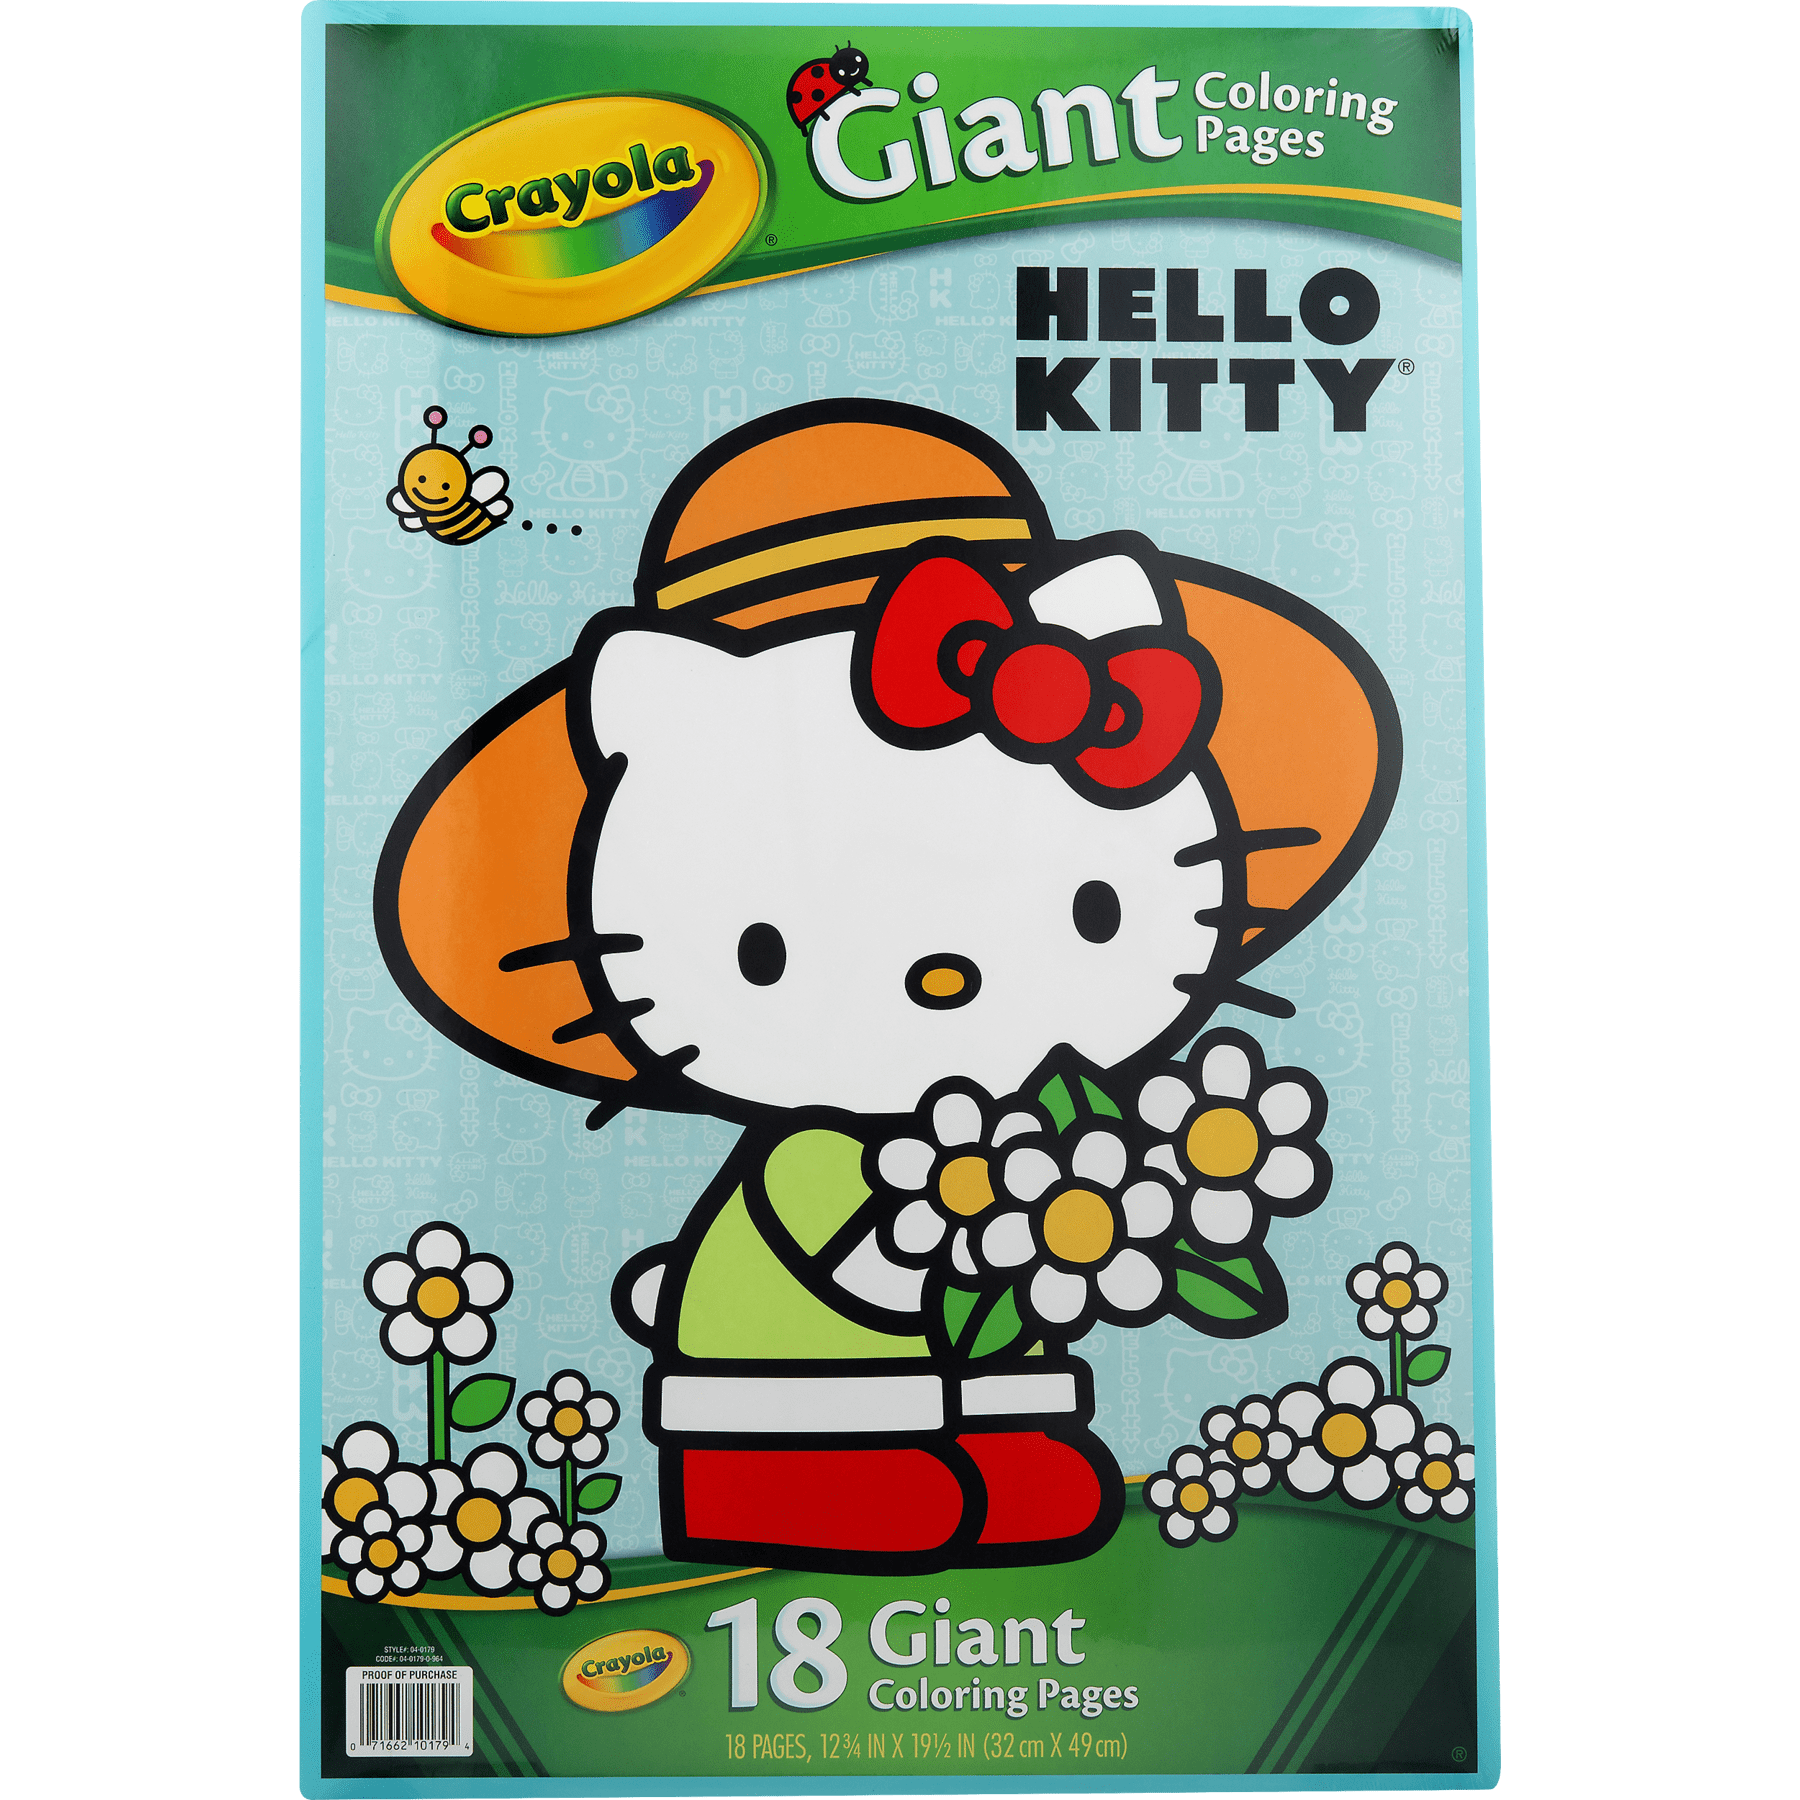 Crayola giant coloring pages featuring hello kitty 18 count walmart com